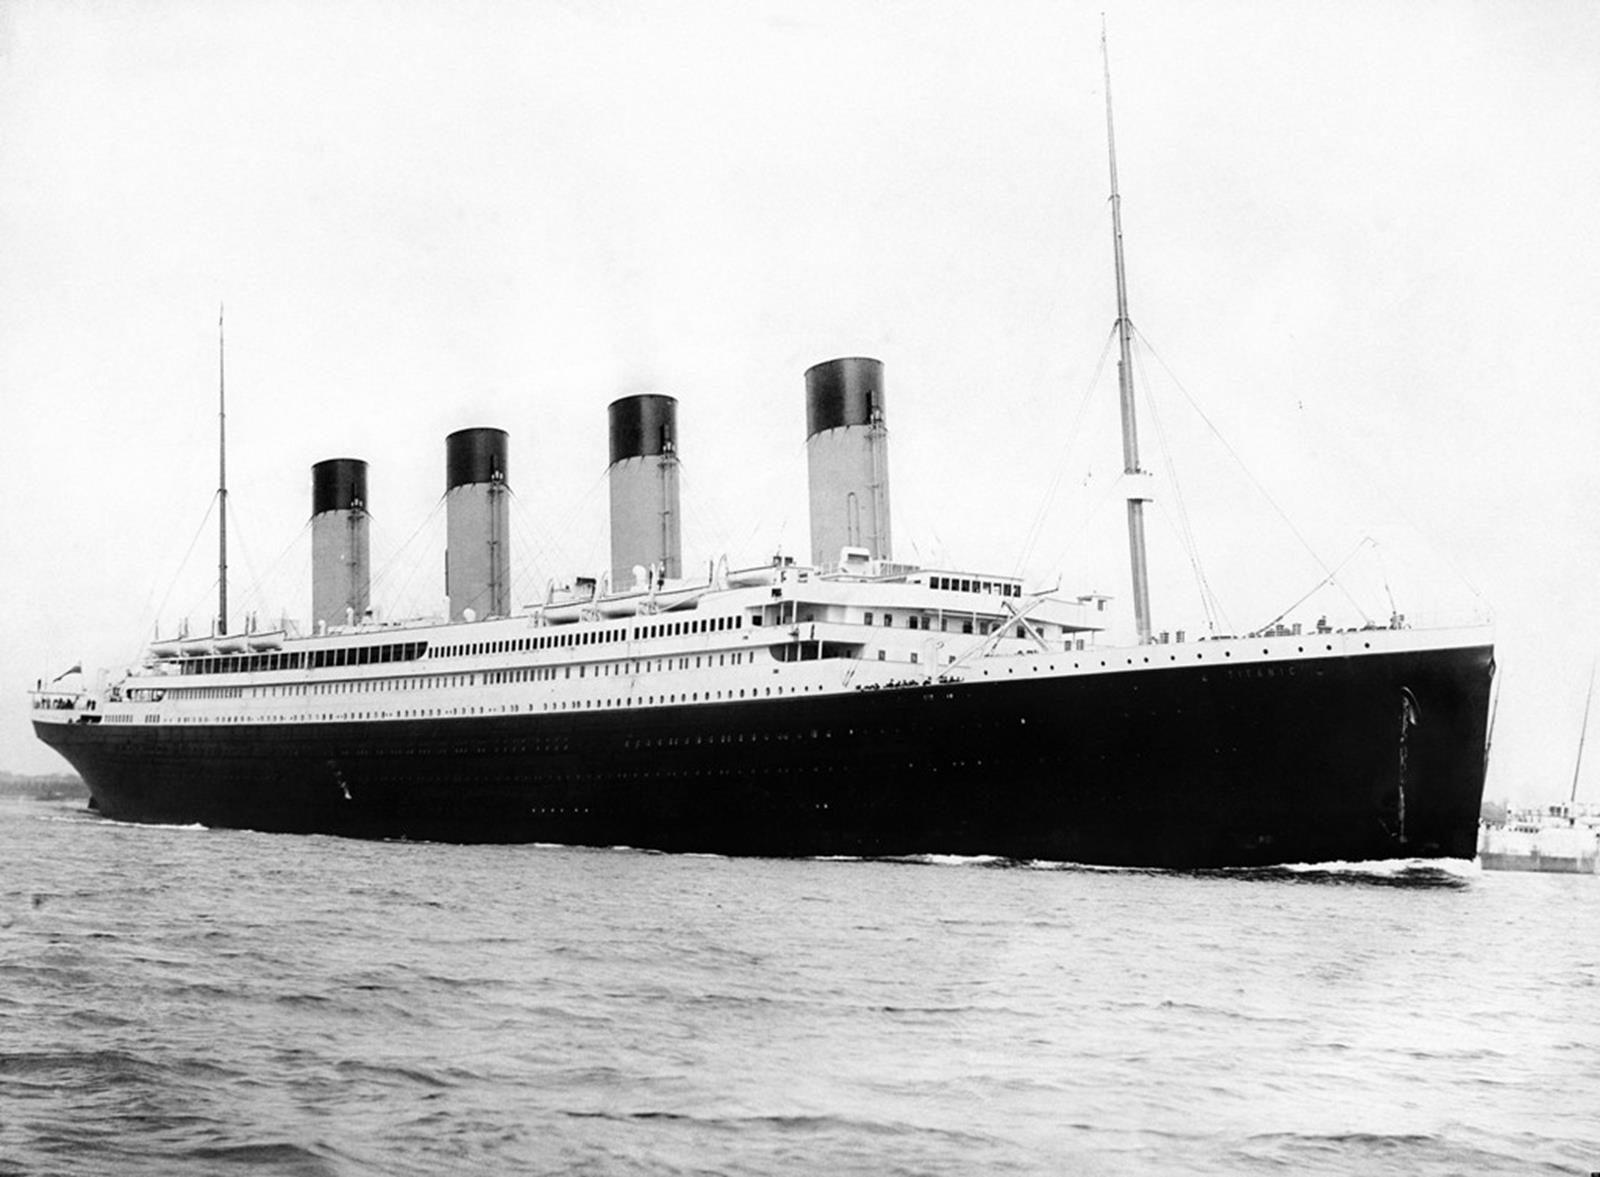 An original photograph of Titanic. Credit: F.G.O. Stuart at en.wikipedia